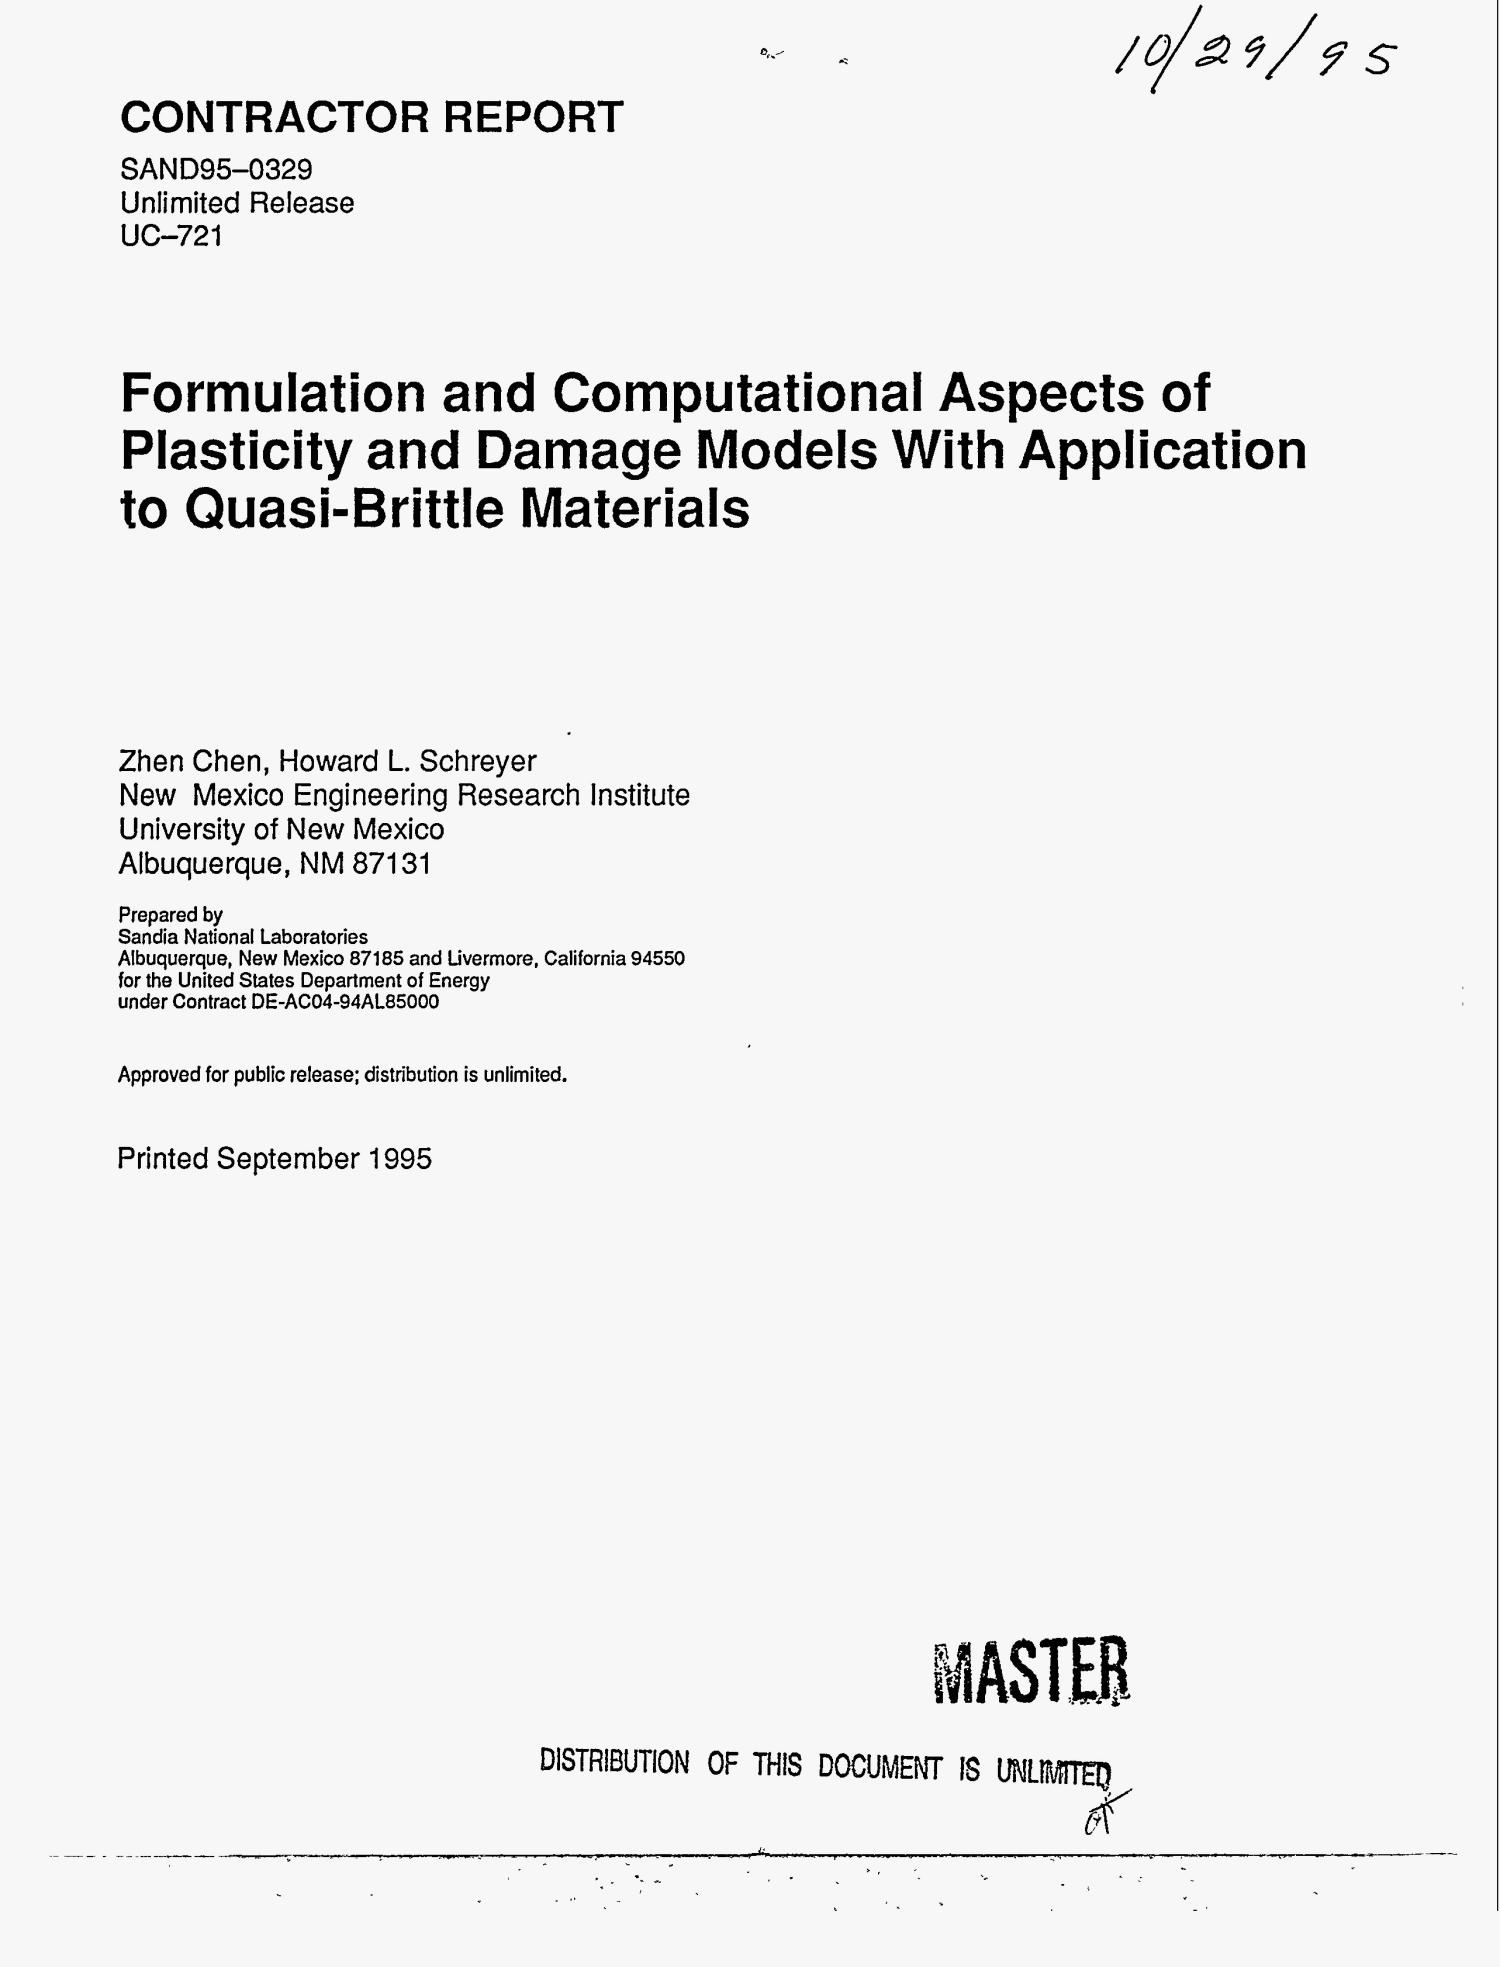 Formulation and computational aspects of plasticity and damage models with application to quasi-brittle materials                                                                                                      [Sequence #]: 1 of 120